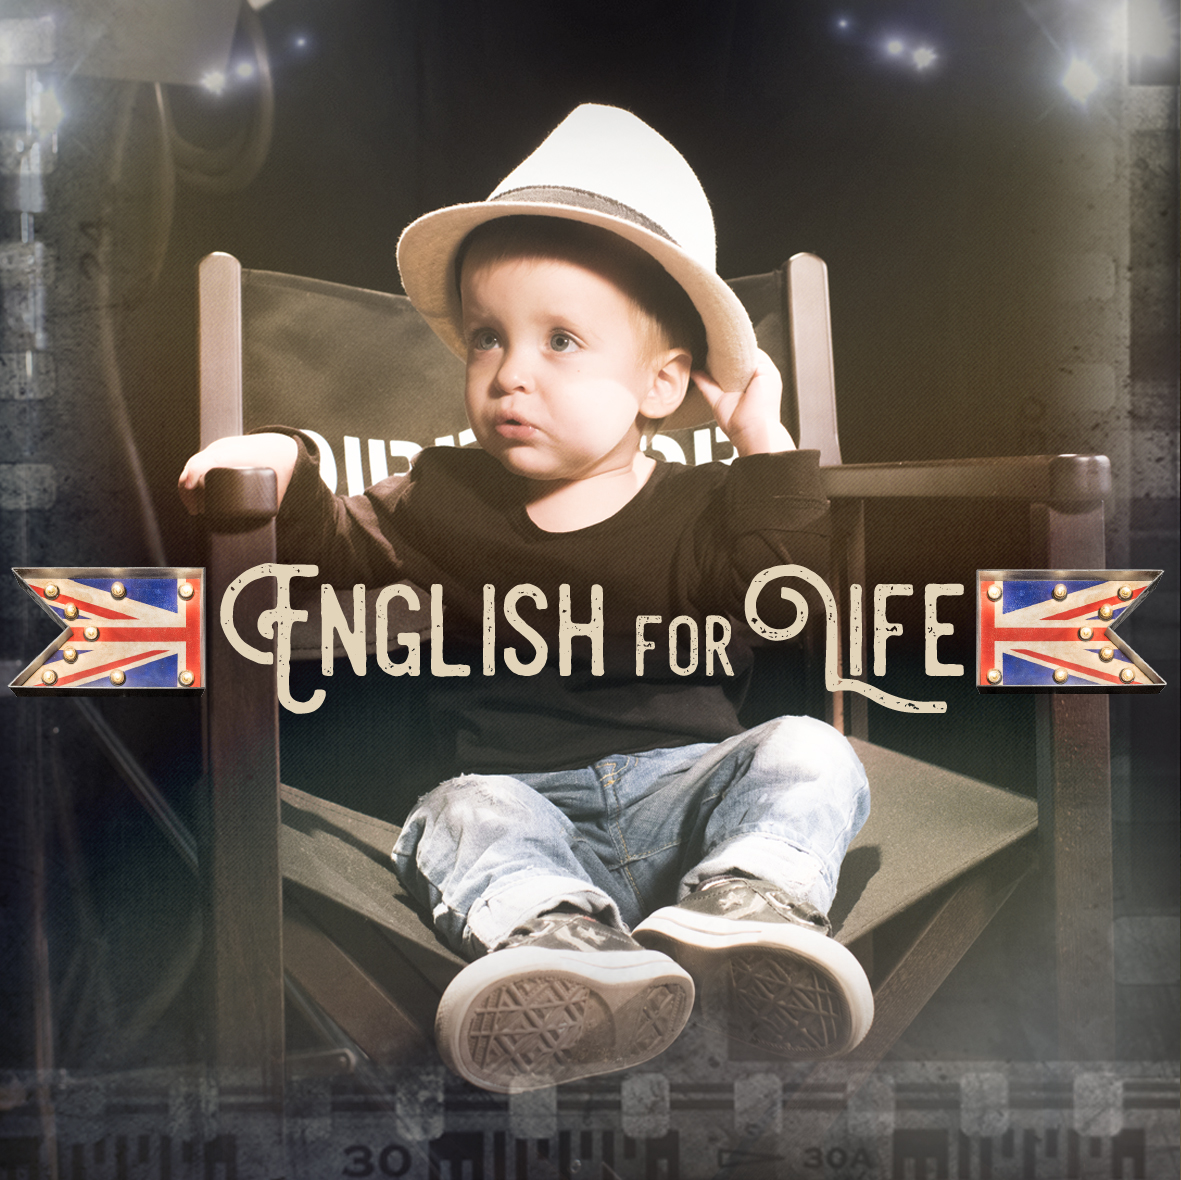 English for Life is the new Kids&Us campaign for the academic year 2017/2018